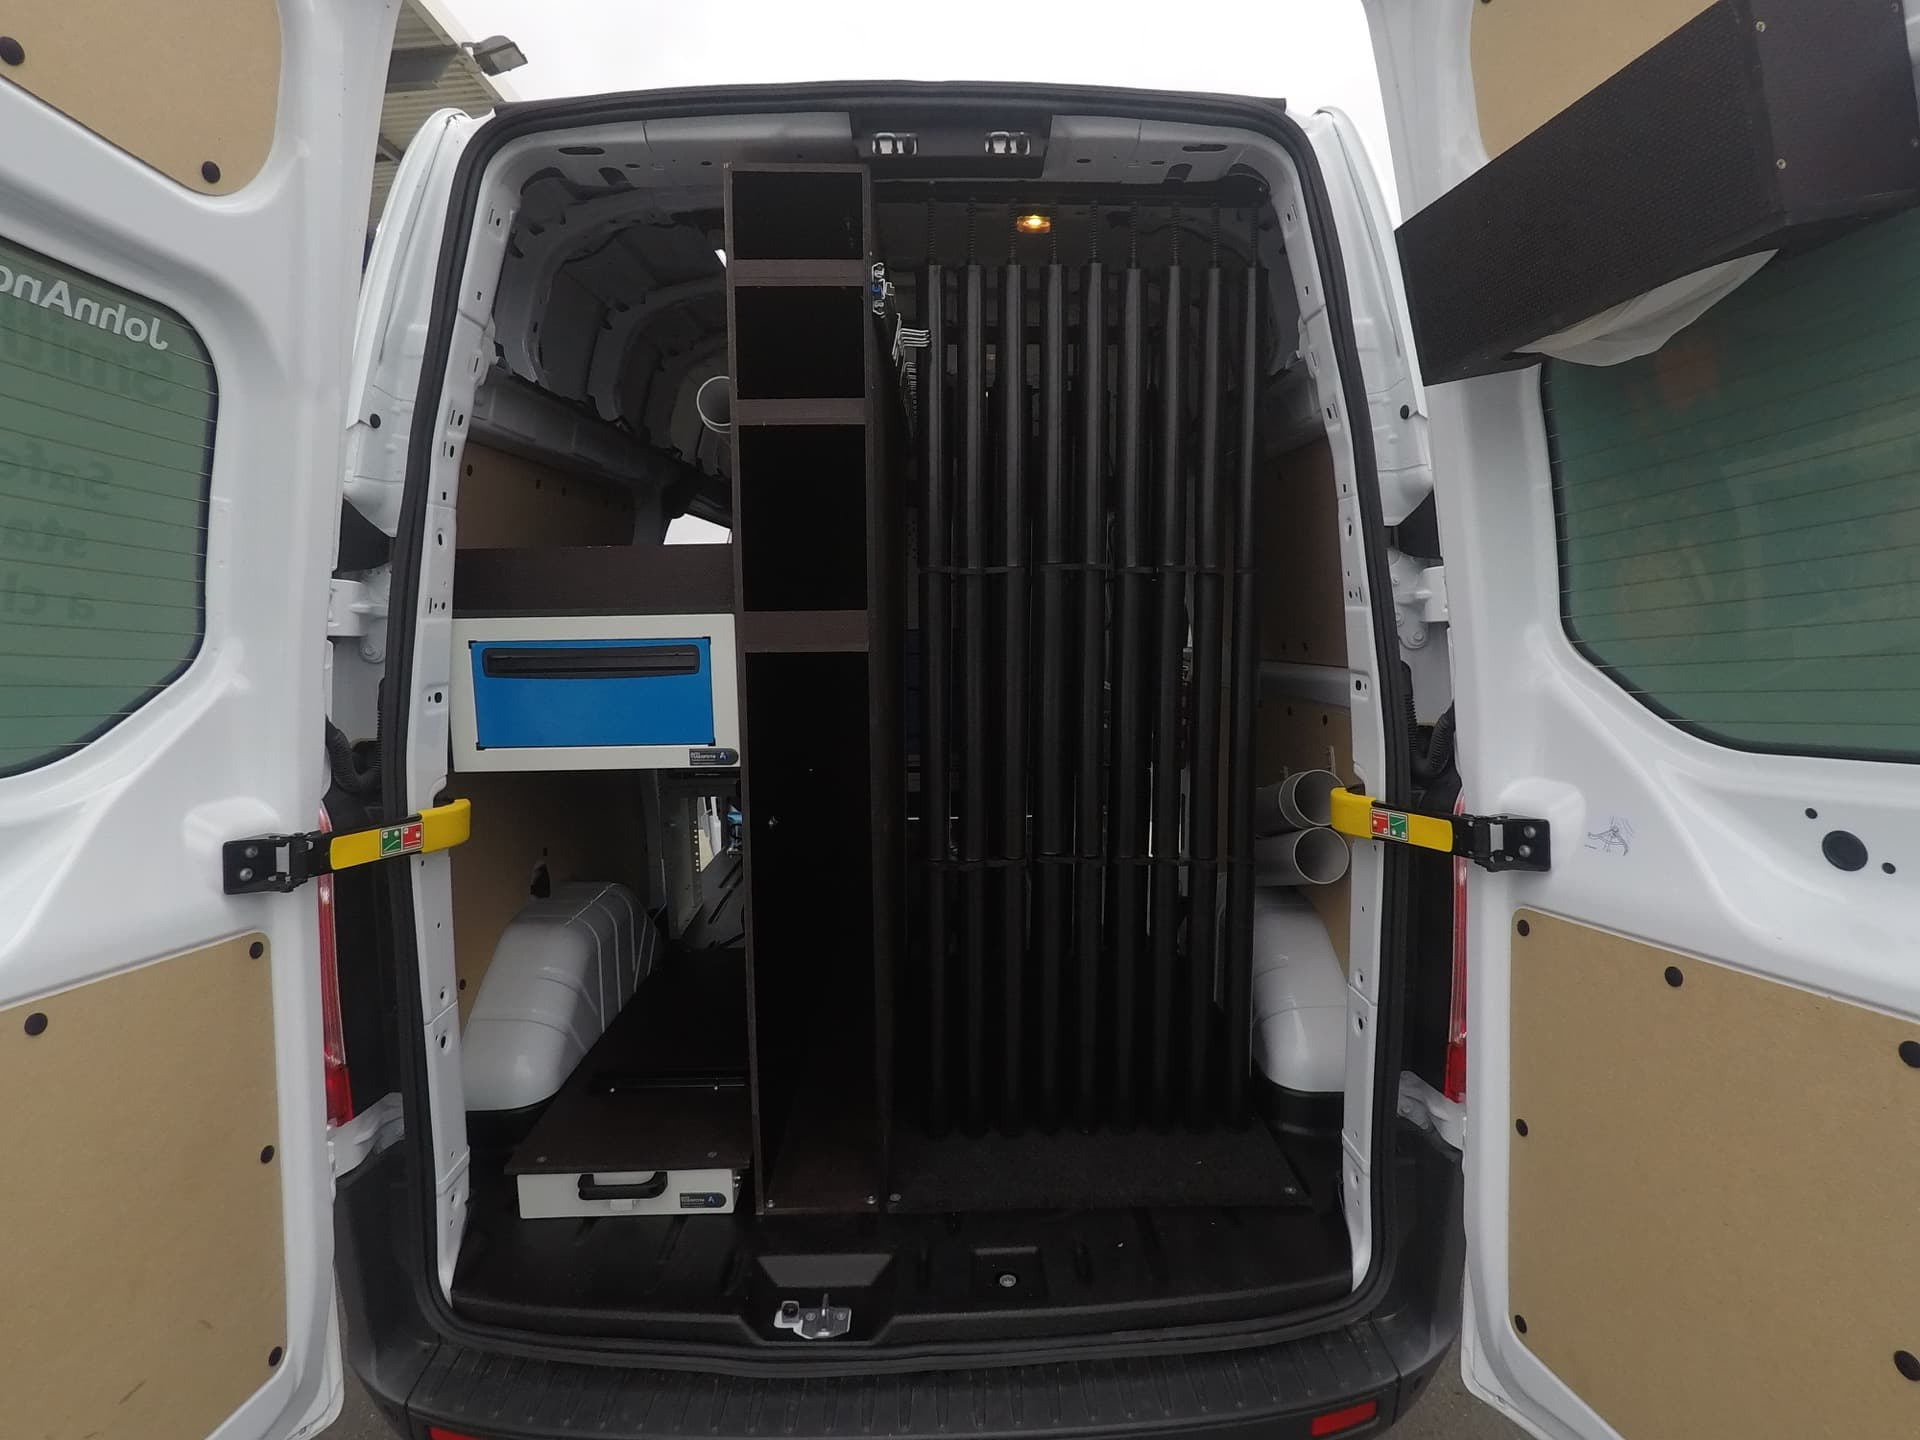 Commercial van fitout using storage to maximise space